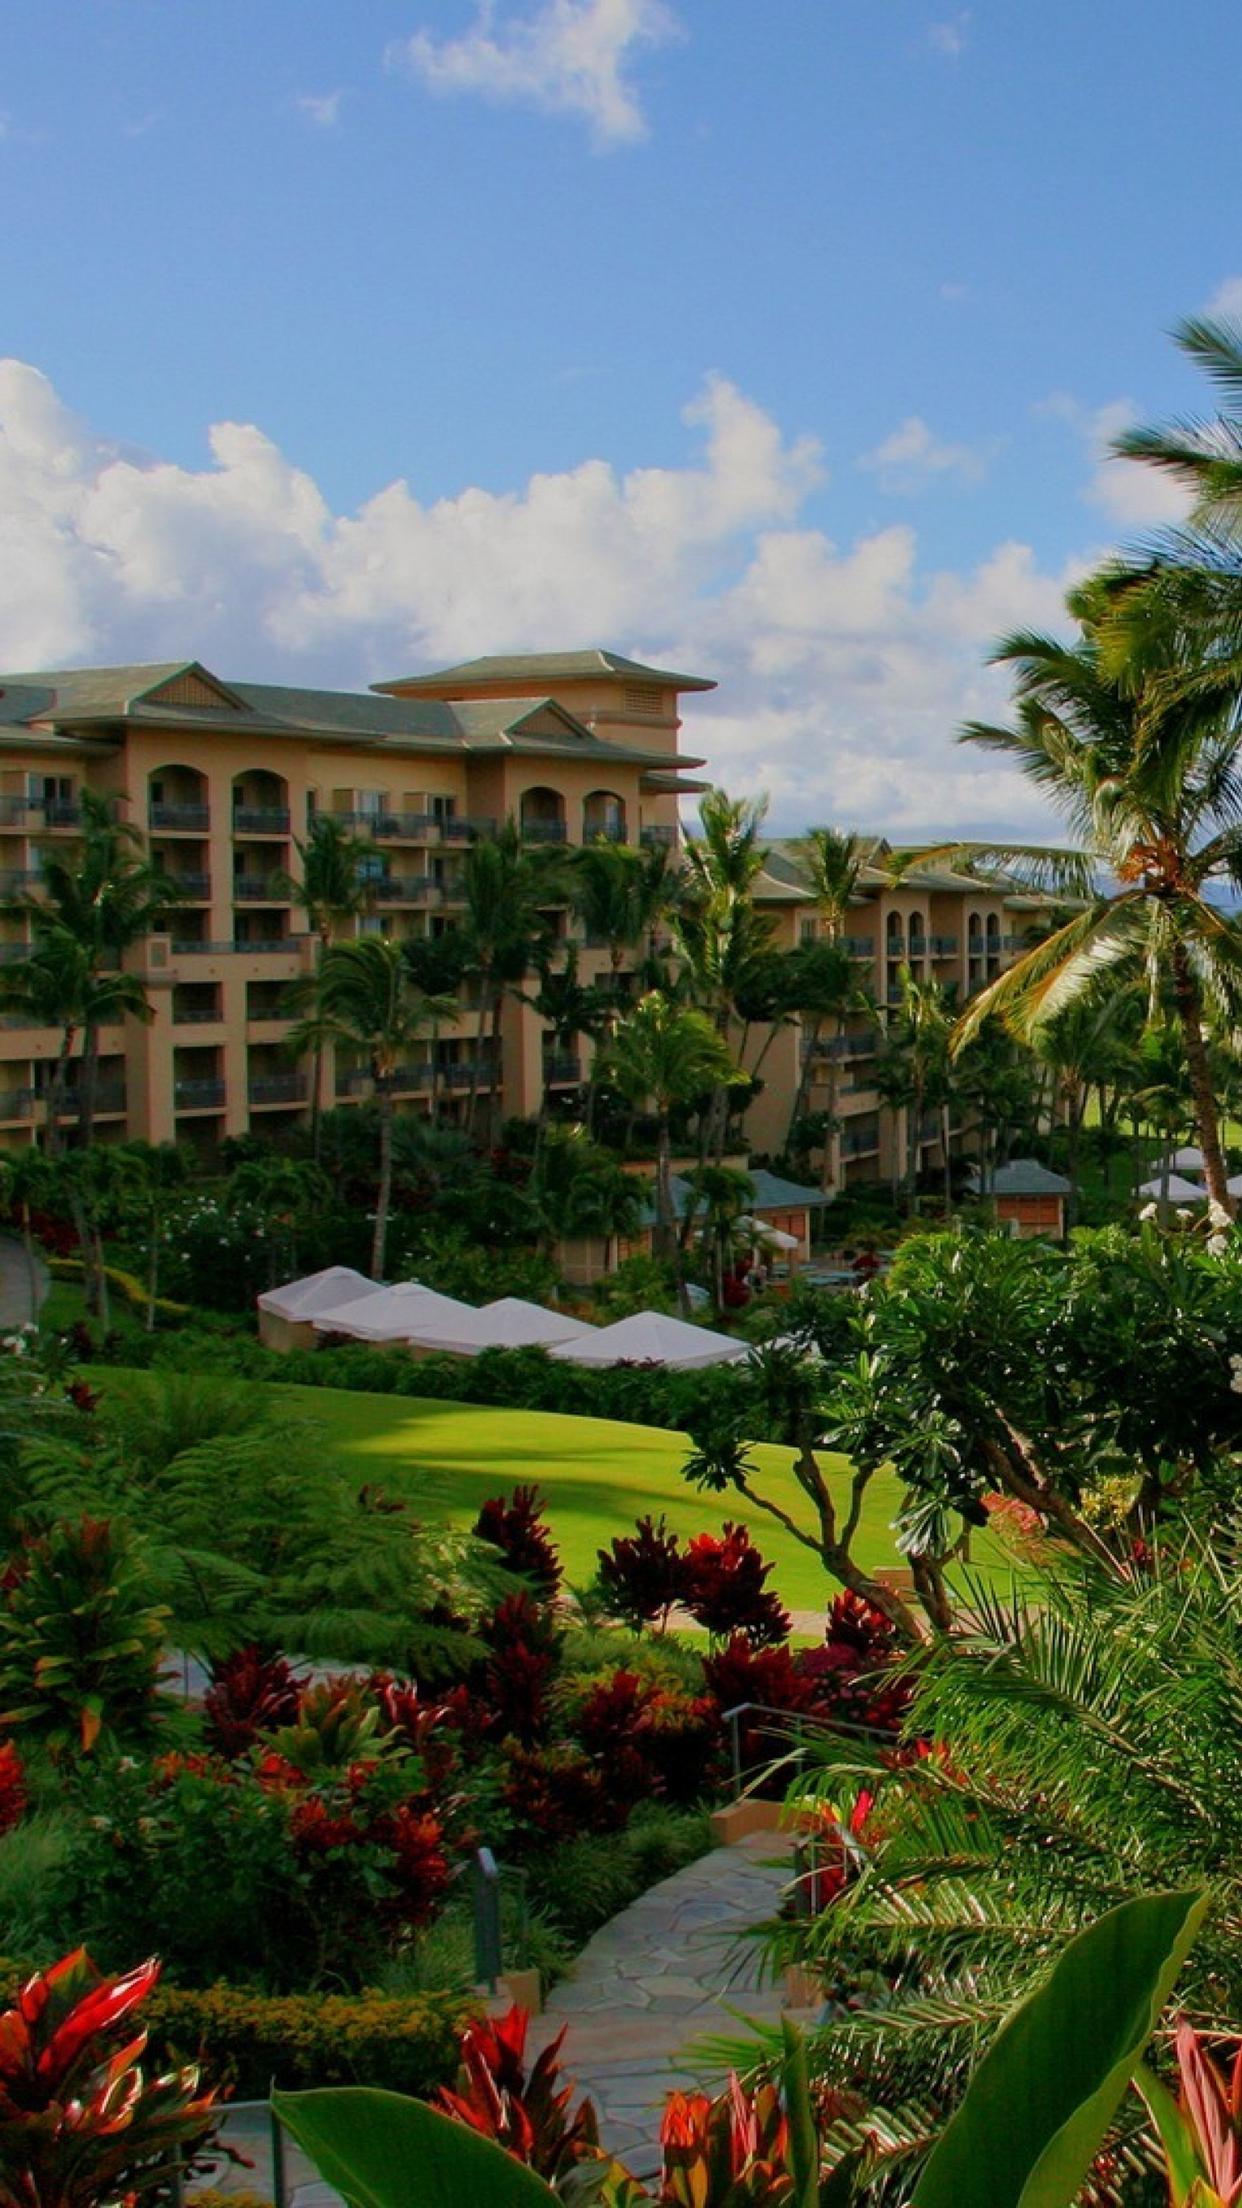 Hawaii Hotel Wallpaper For Iphone X 8 7 6 Free Download On